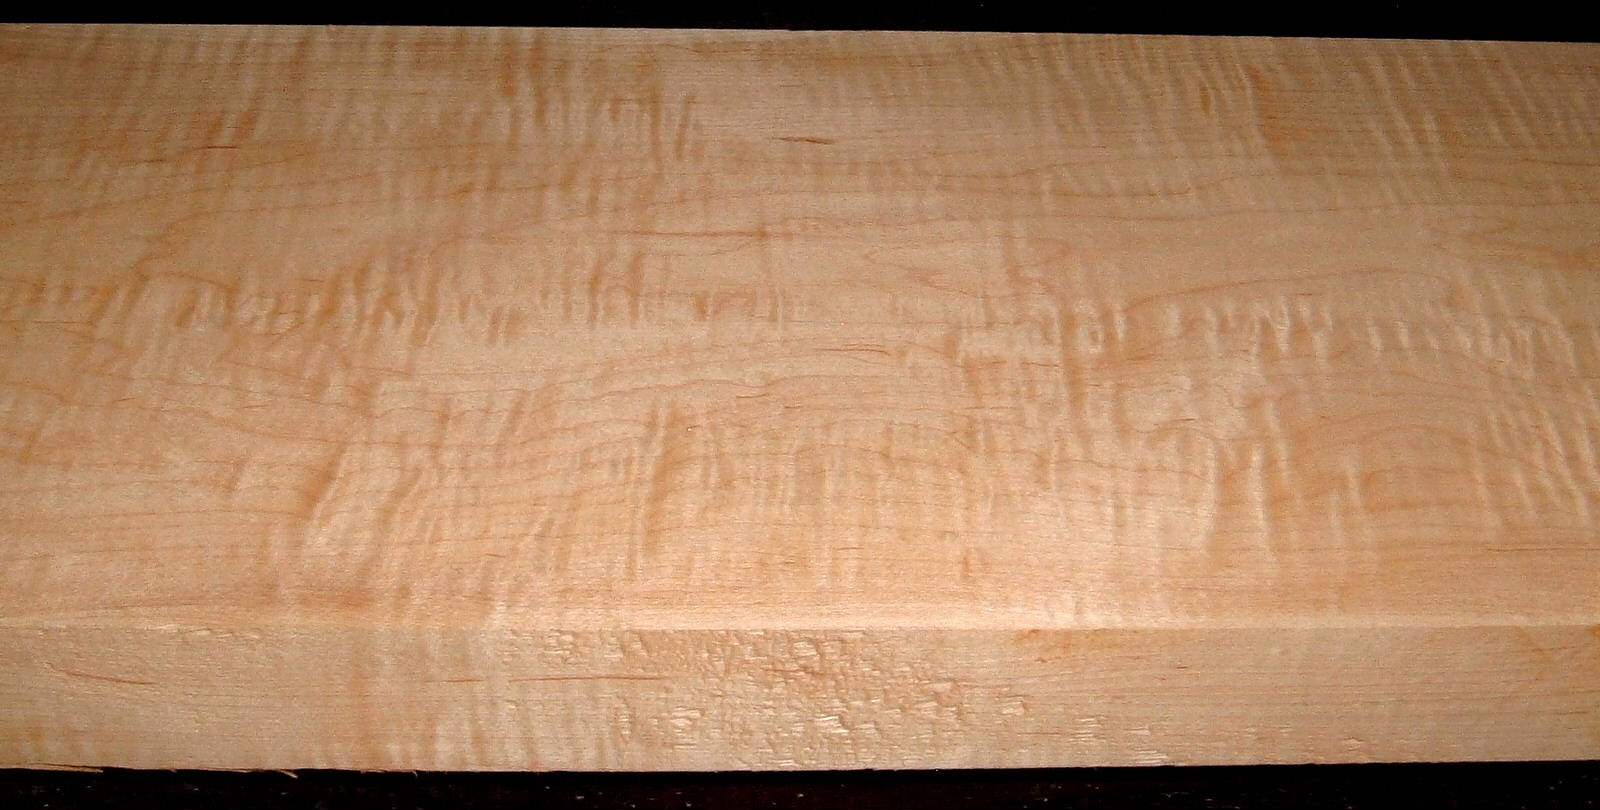 HM2007-124, 1-7/8x9-1/2x44, 8/4 Curly Tiger Figured Hard Maple